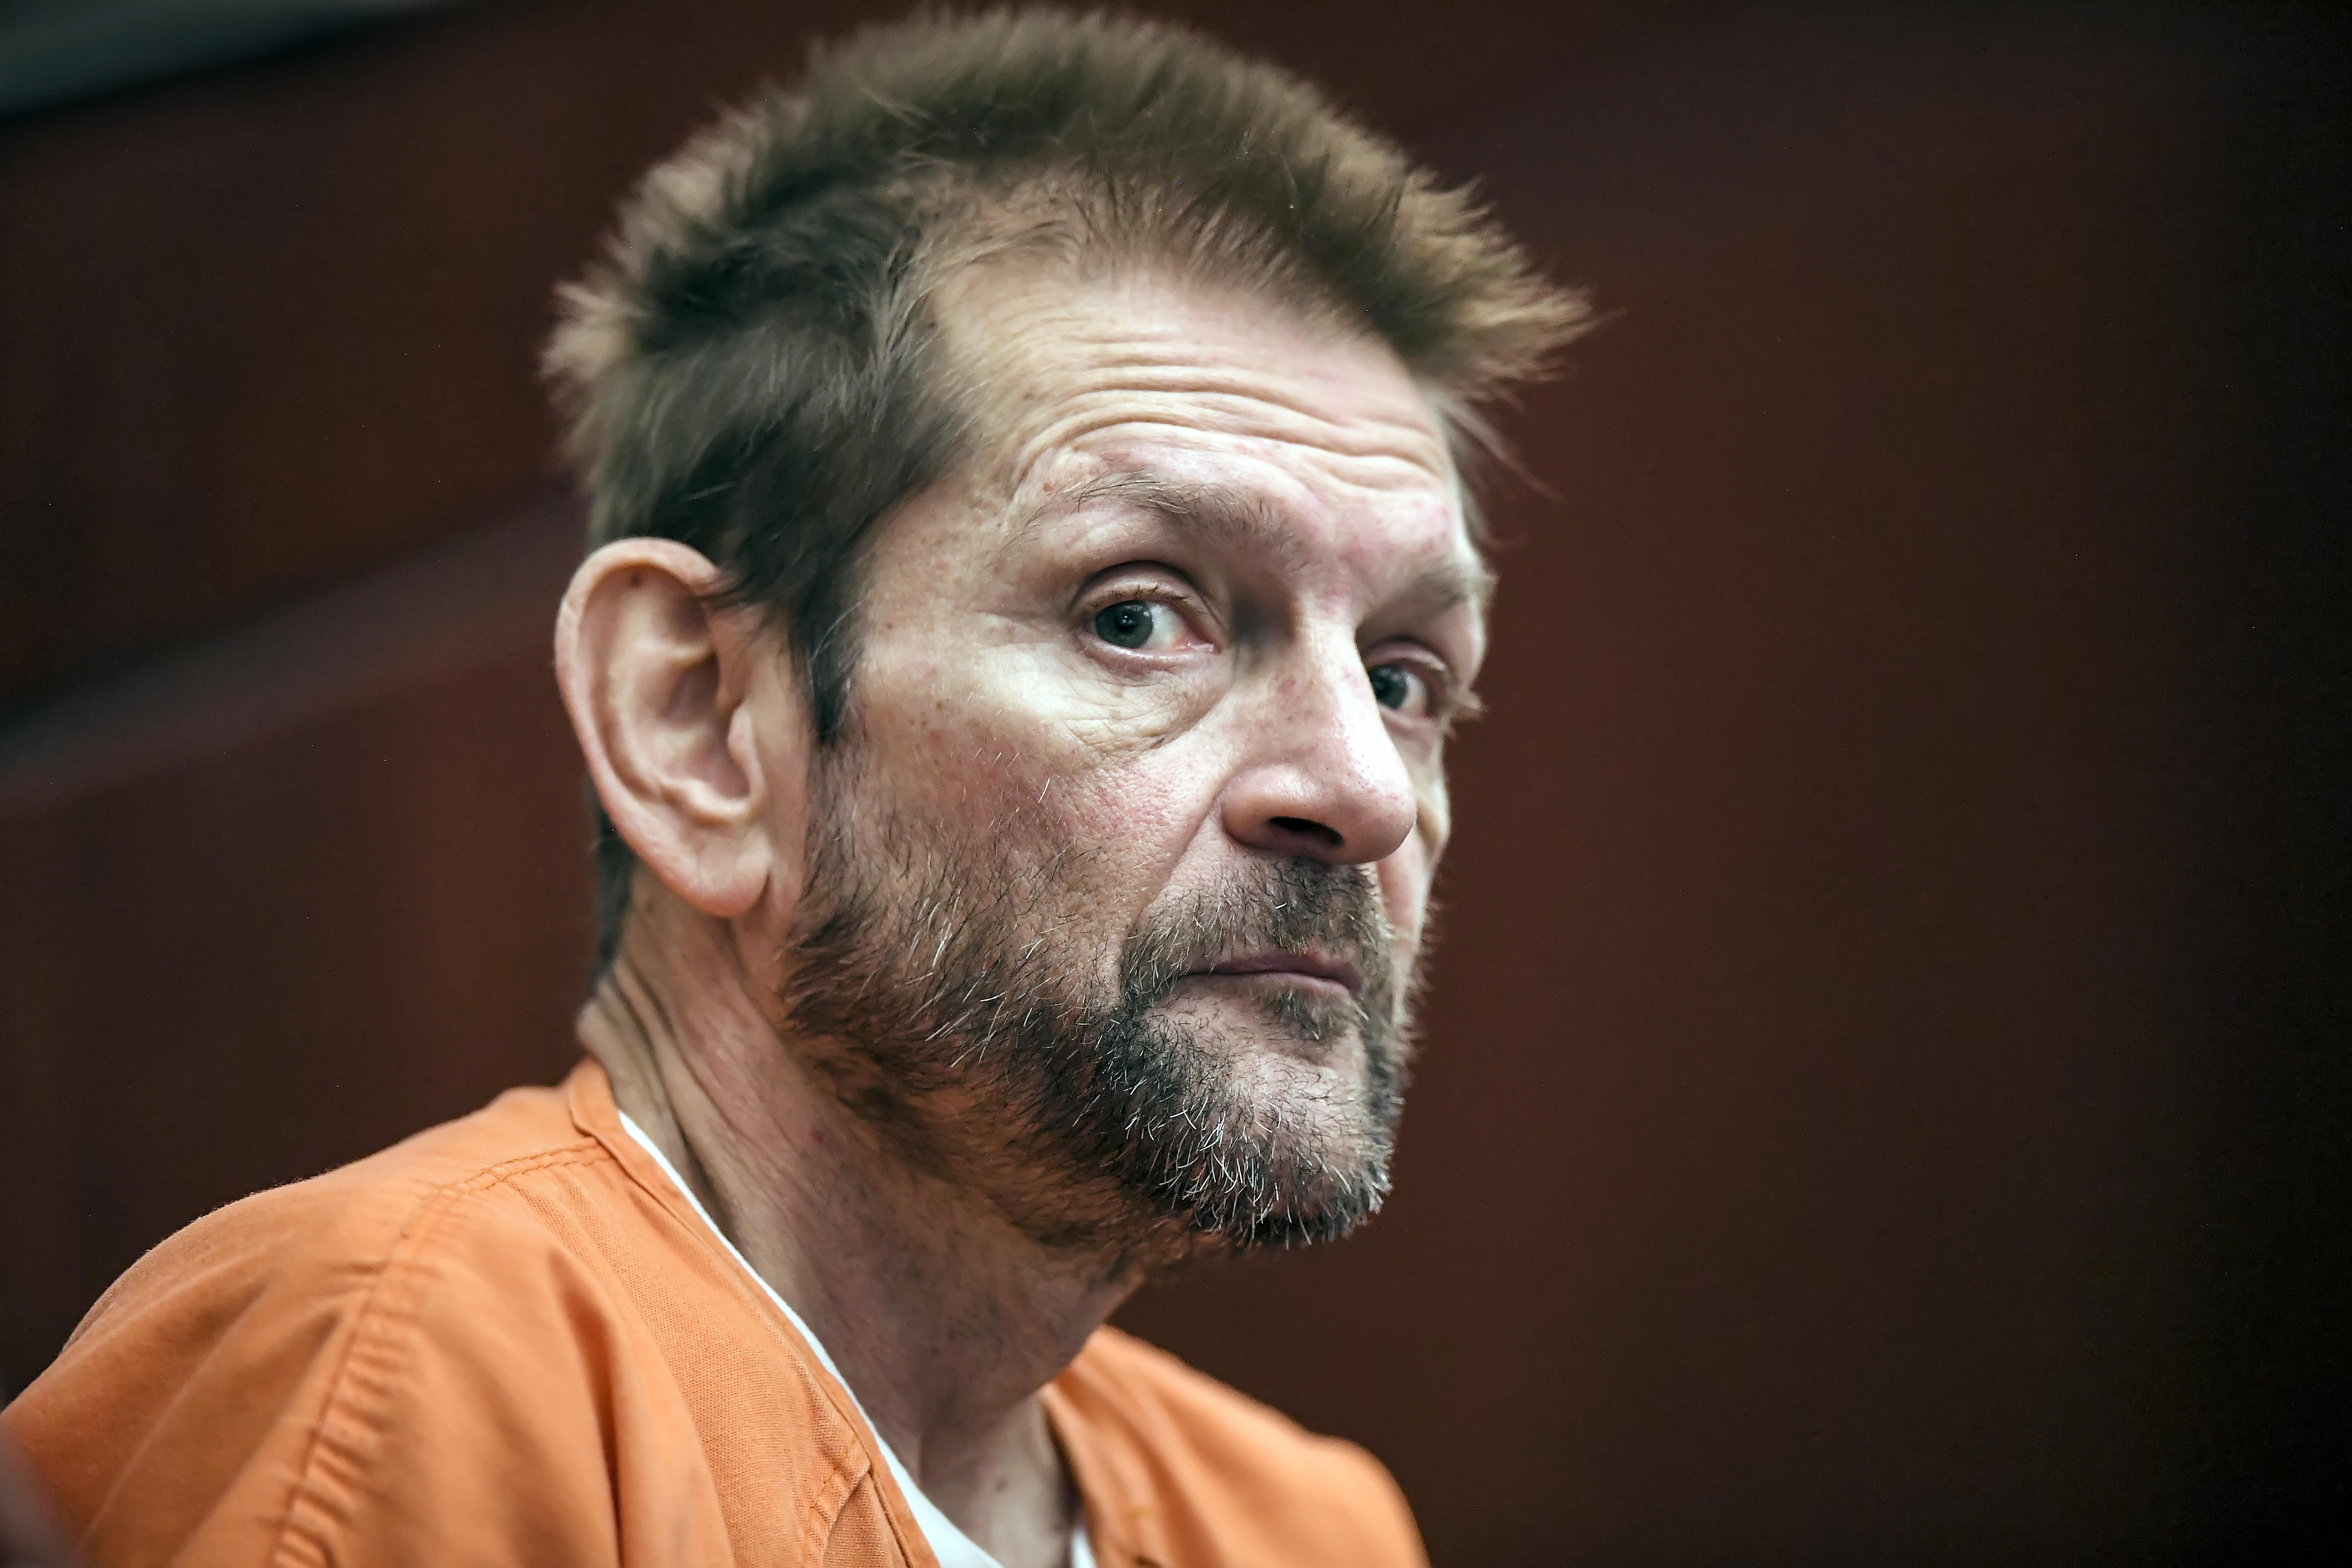 Kansas man faces hate crime indictment in bar shooting